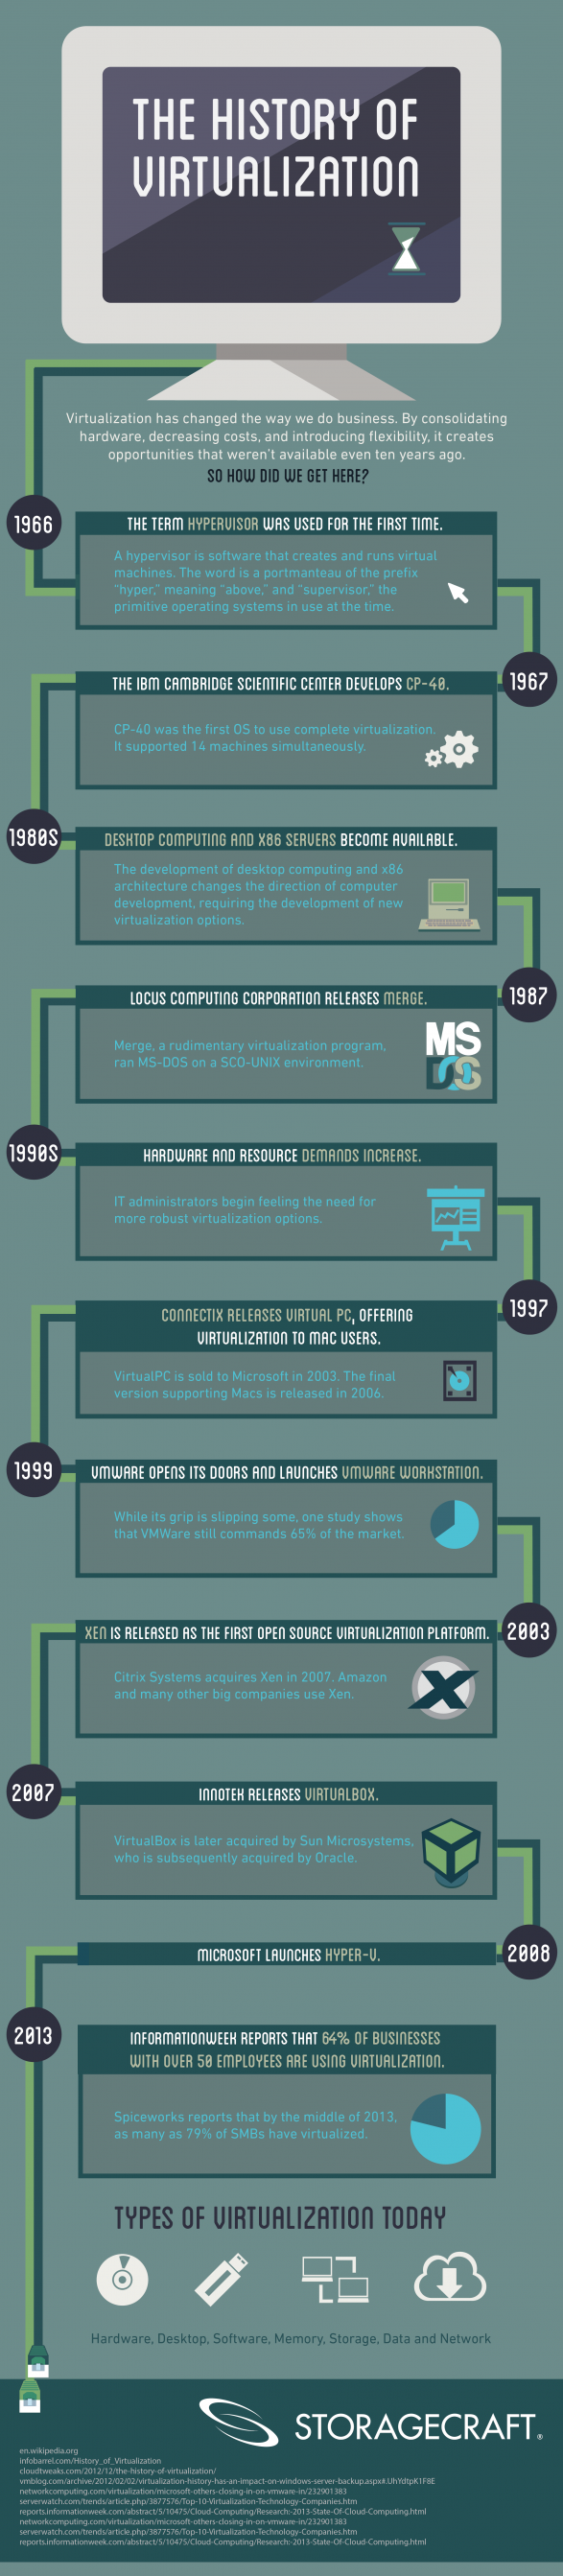 The History of Virtualization